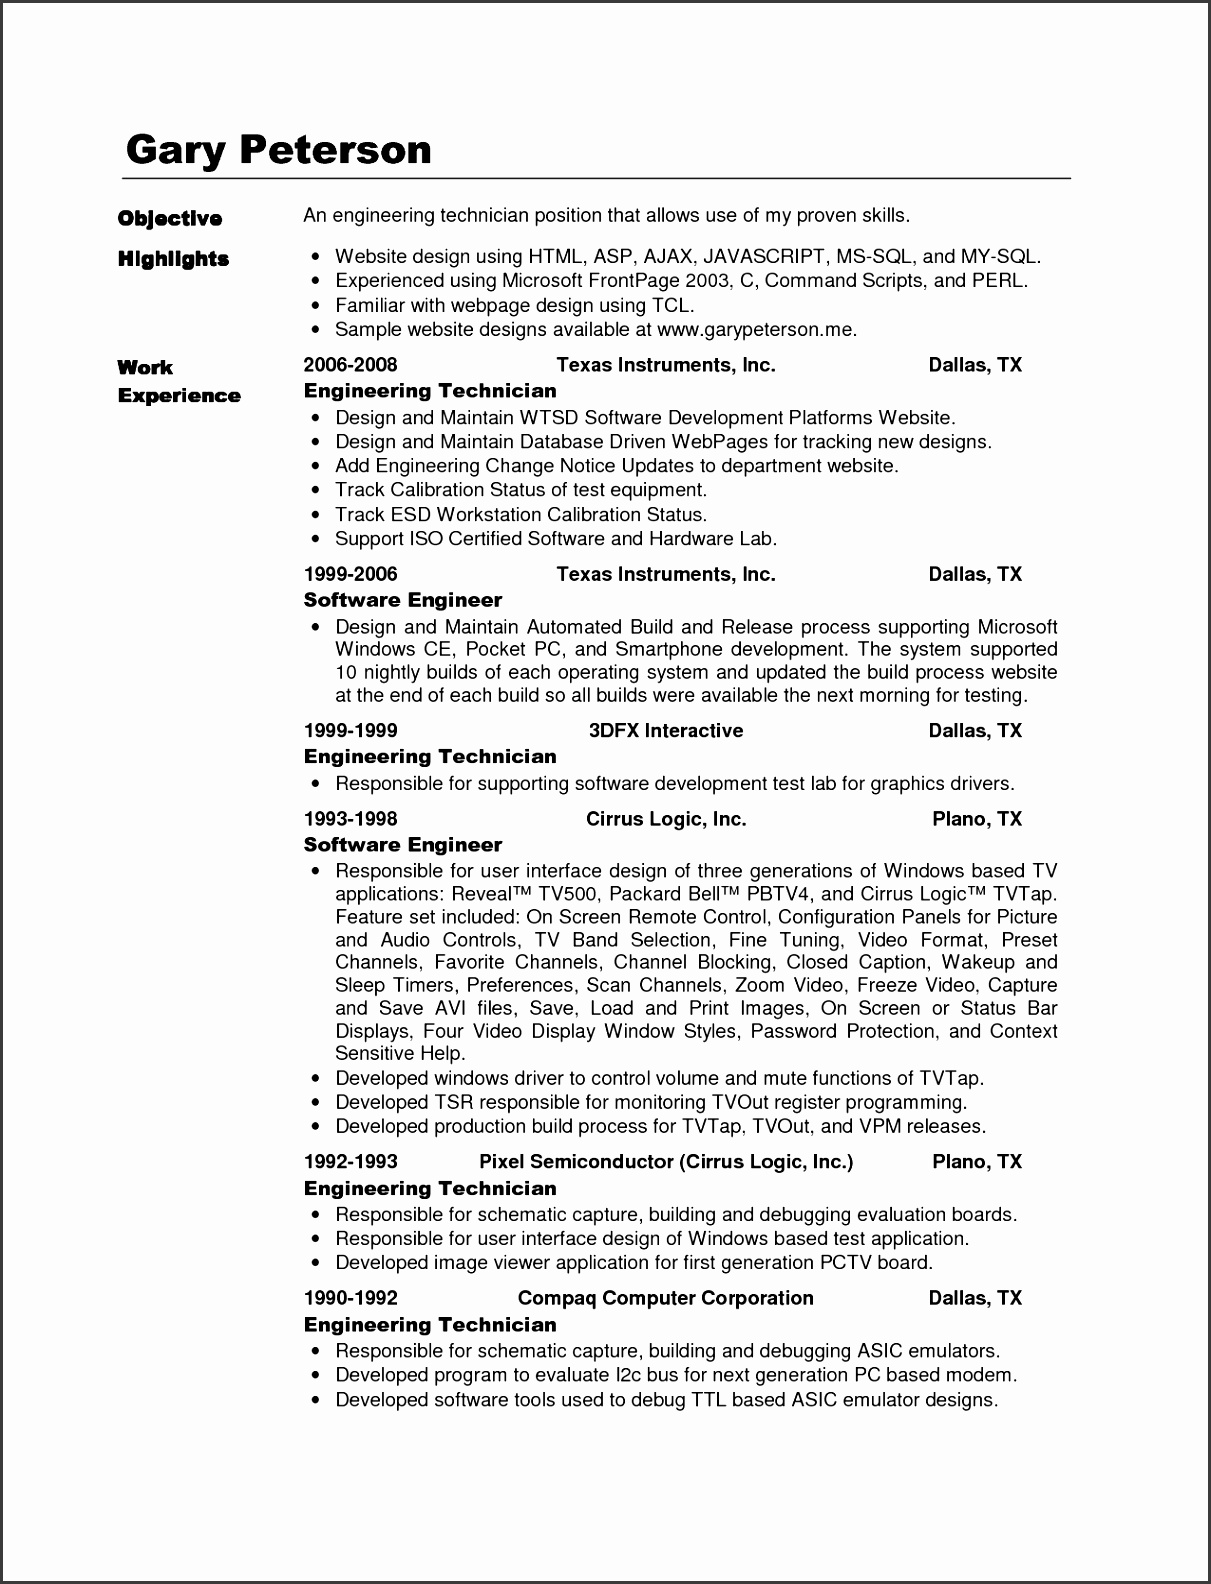 Easy Cover Letter Sample Template for Fresh Graduate In Chemistry for Your Awesome Collection Chemical